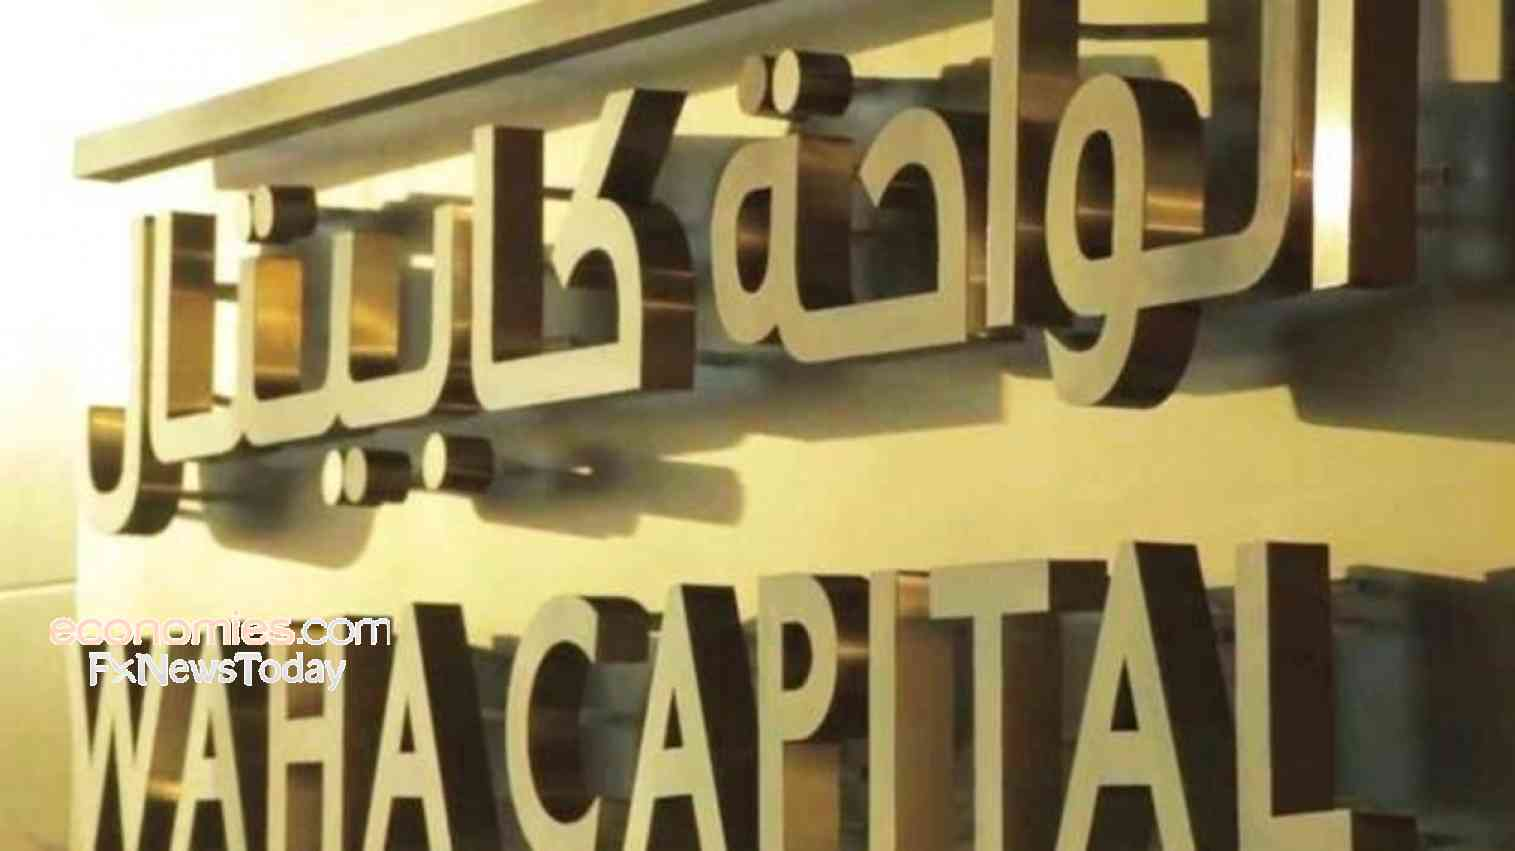 Waha Capital shareholders nod to AED137.9 million dividend distribution